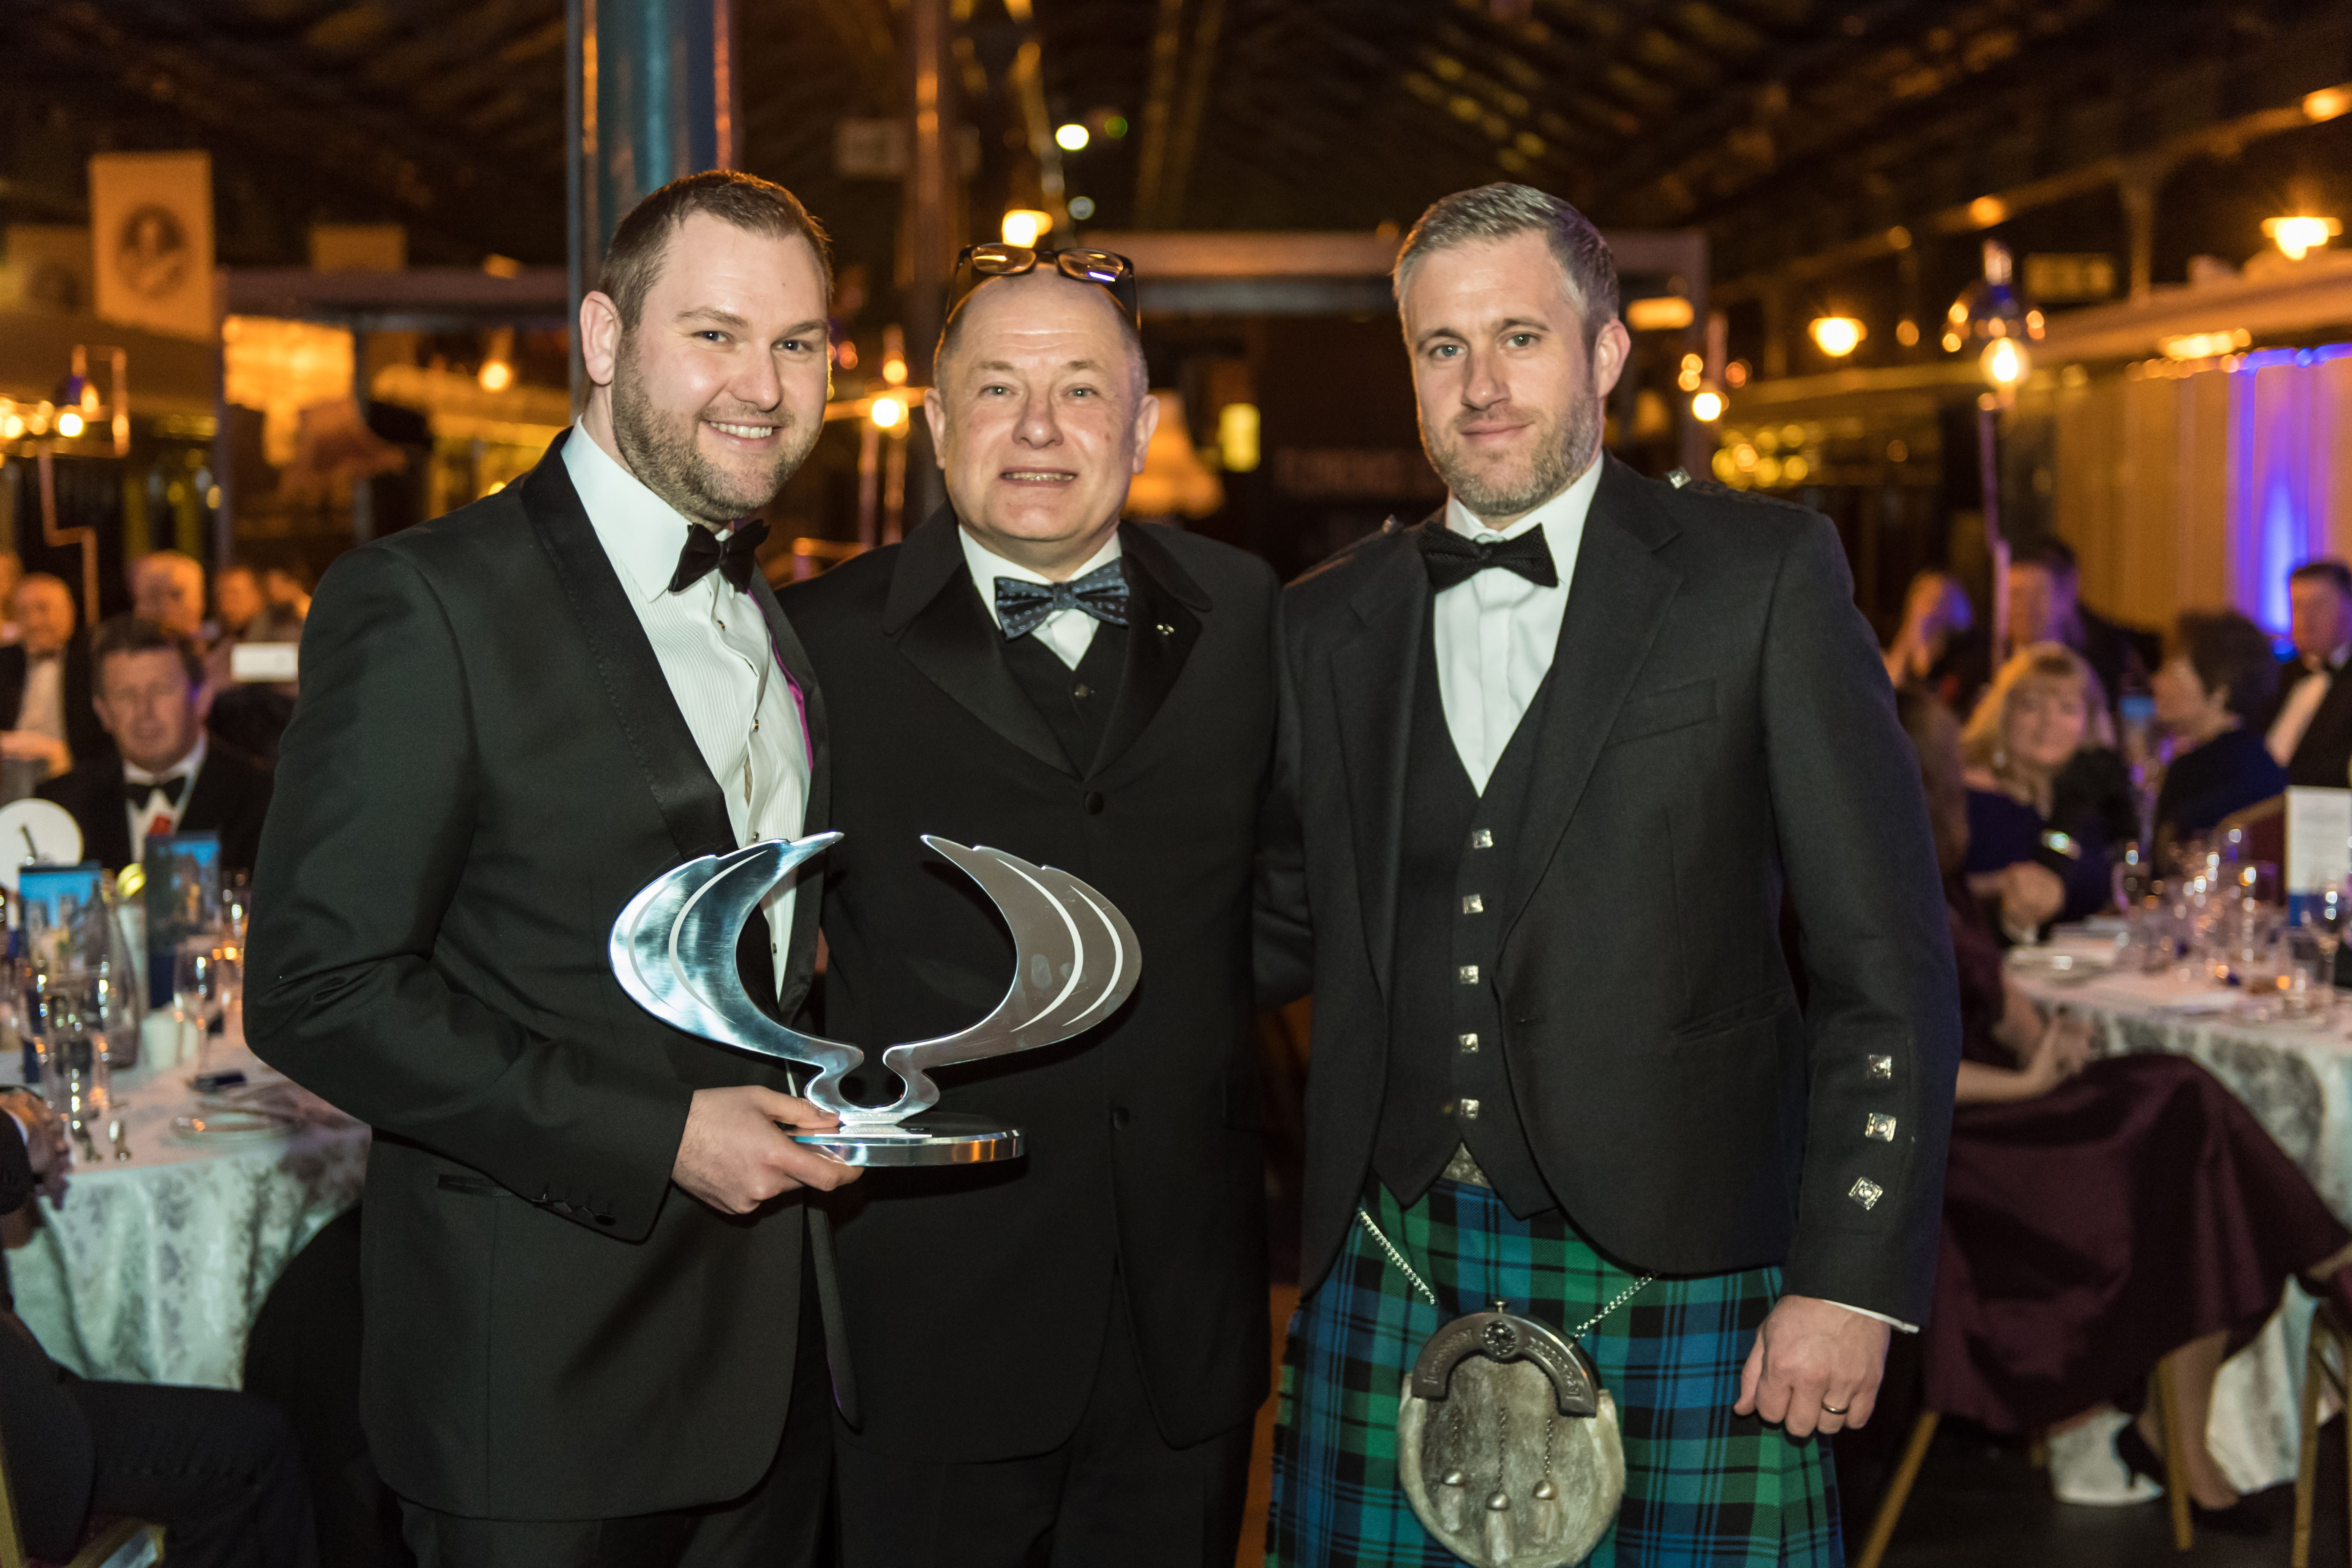 Frasers Win Regional Dealer of the Year!